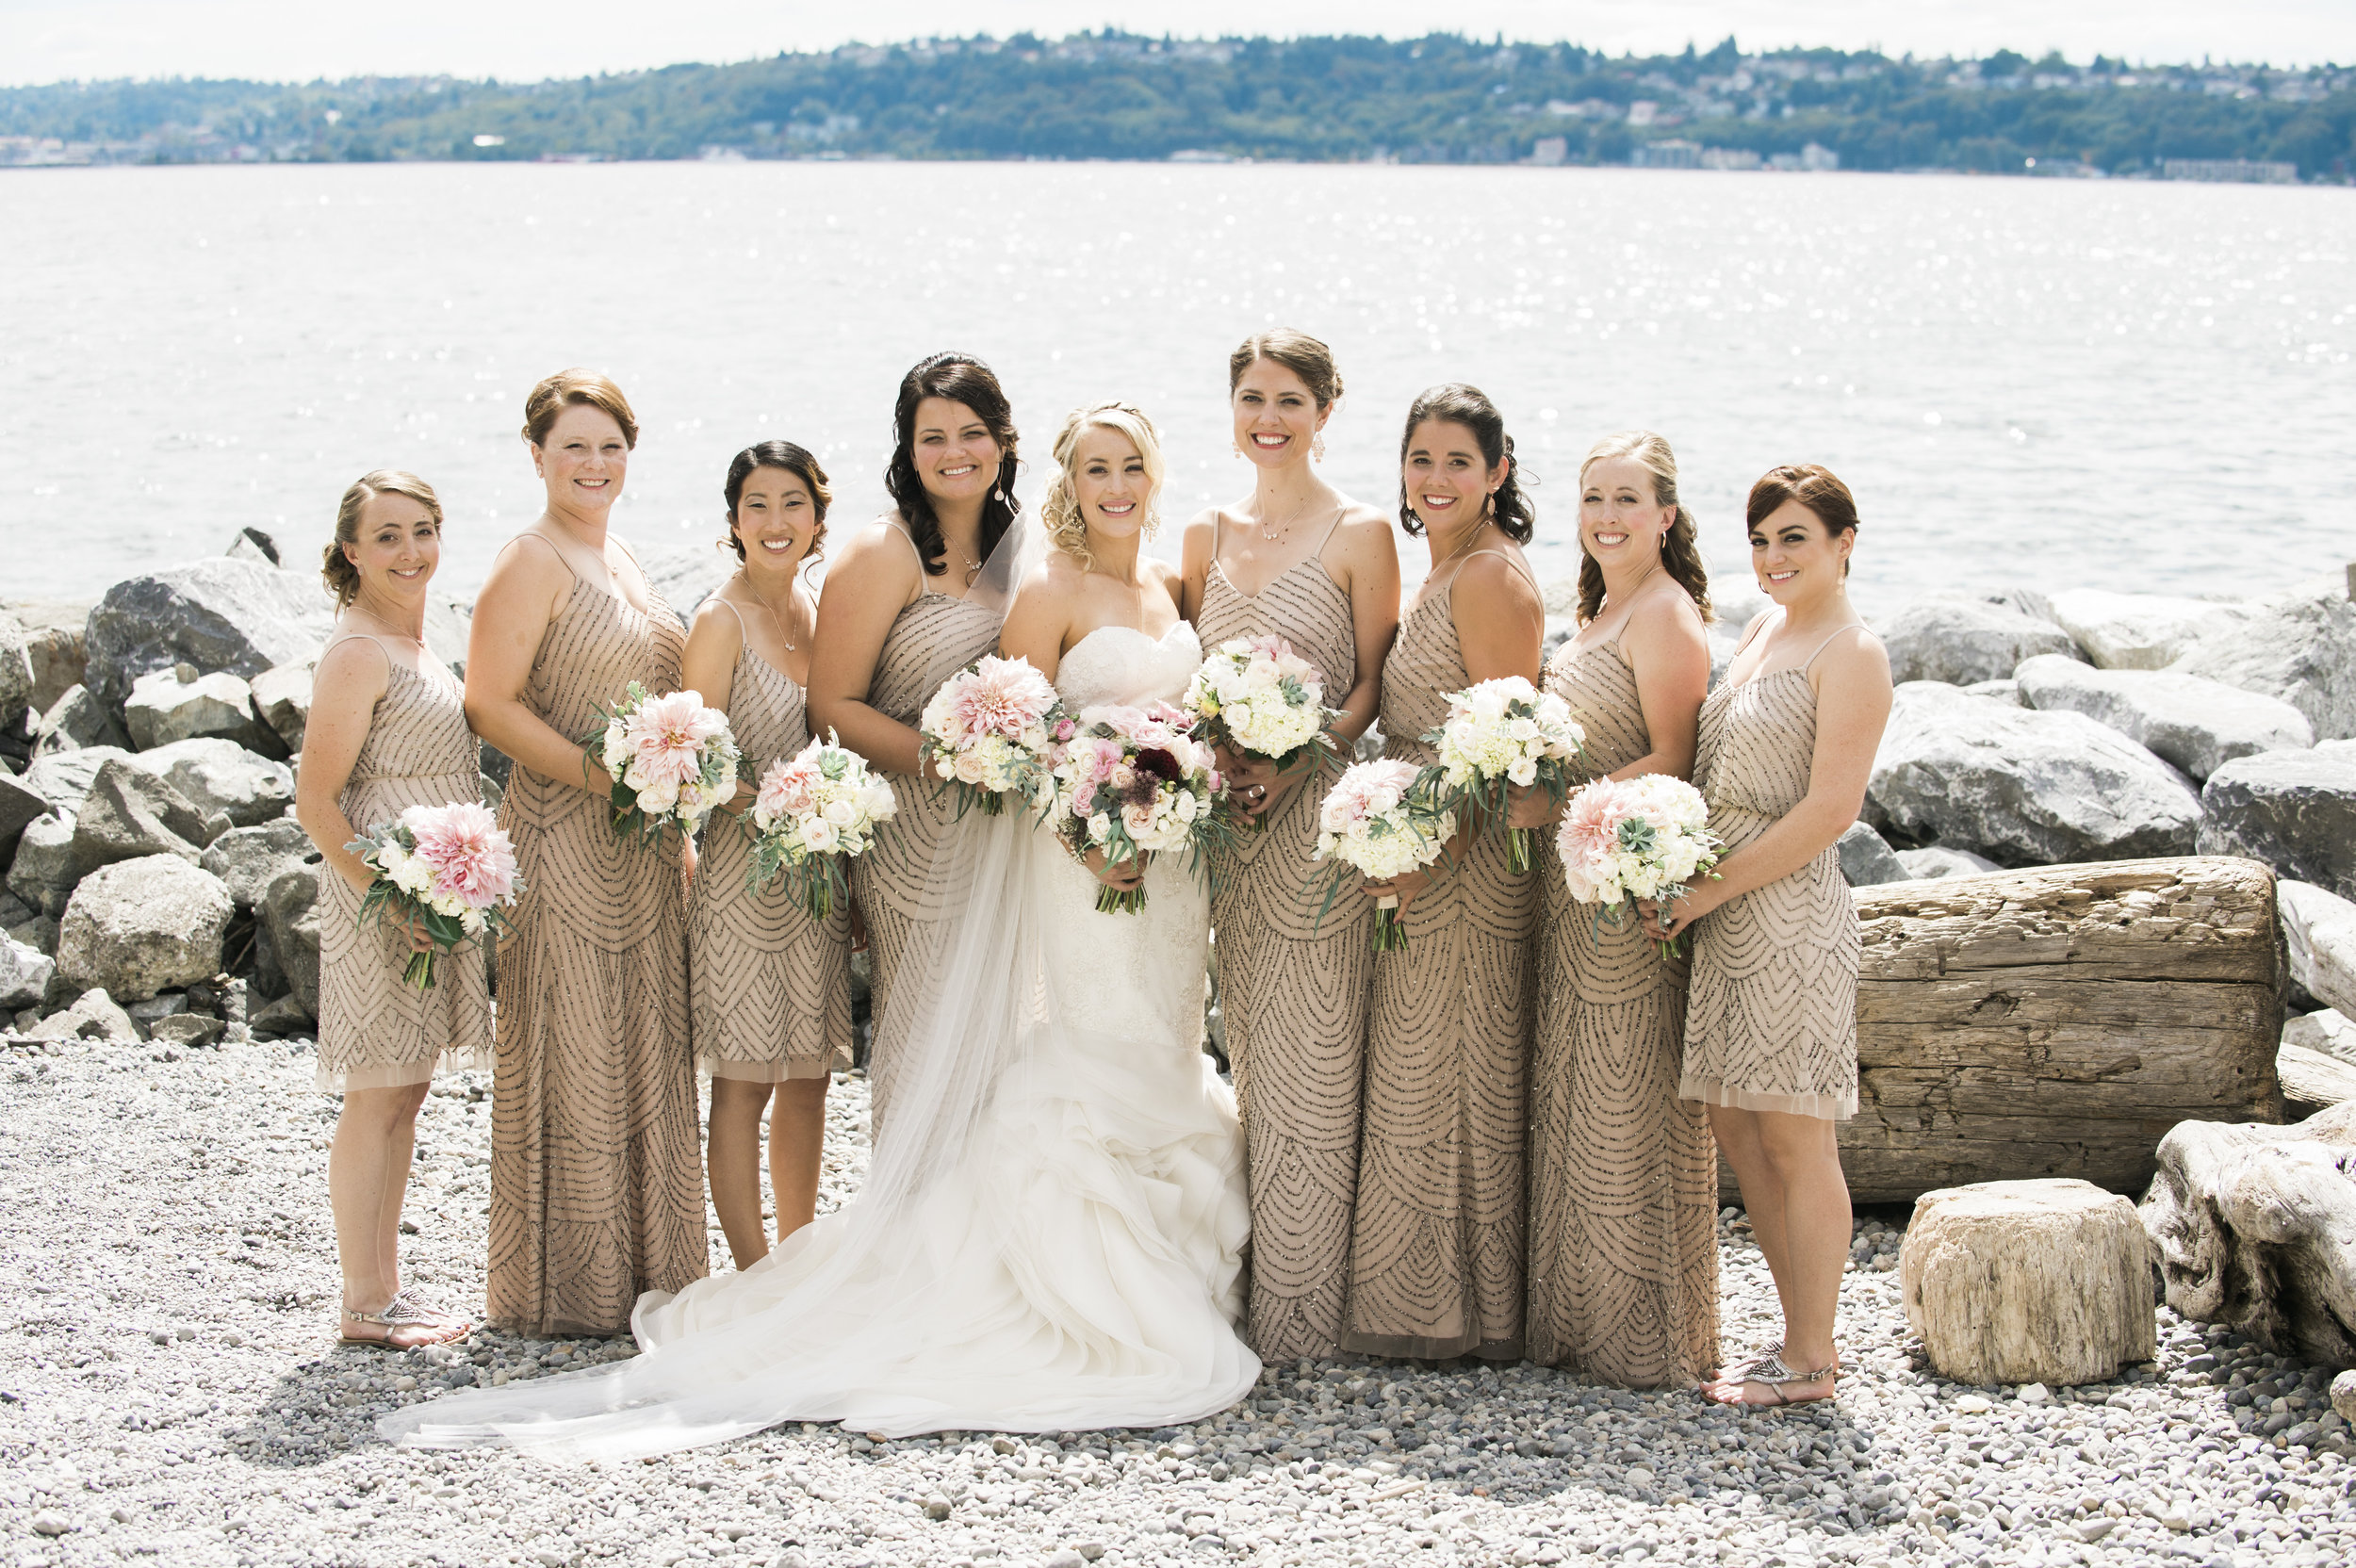 Mauve Bridesmaid Dresses - A Romantic Sodo Park Seattle Wedding - Kimberly Kay Photography